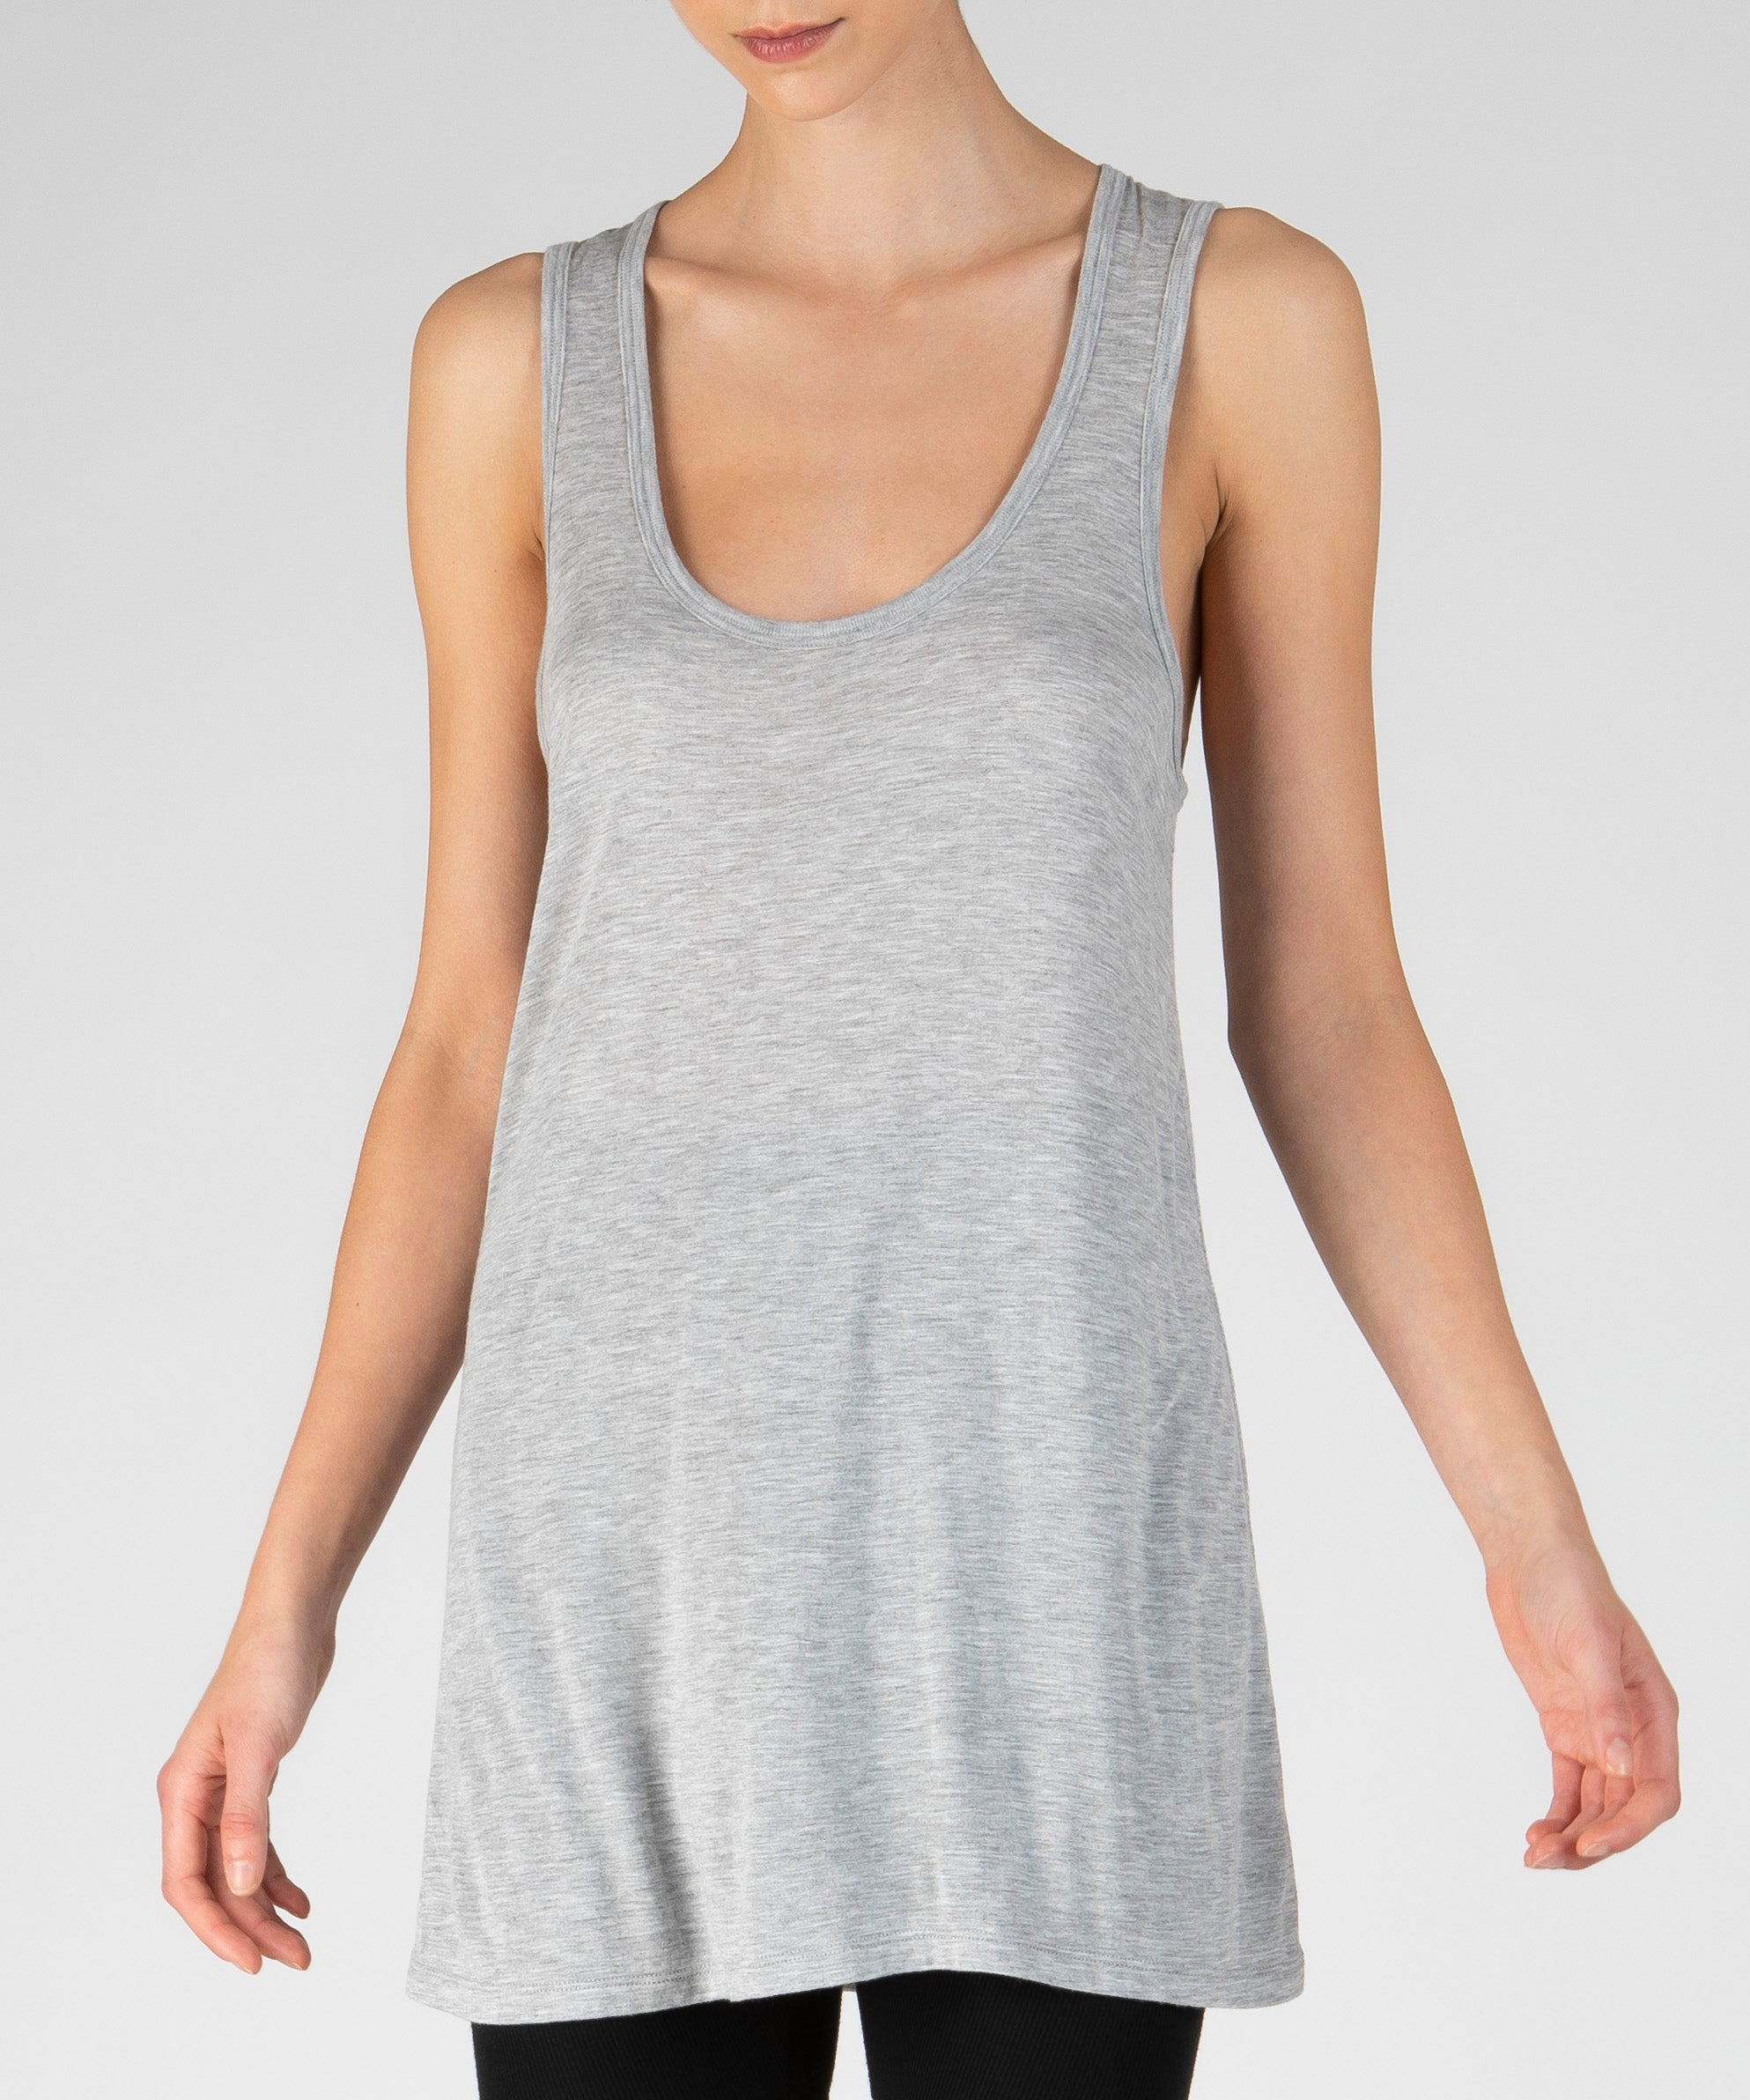 Heather Grey Modal Jersey Tank Top - Women's Jersey Tank Top by ATM Anthony Thomas Melillo